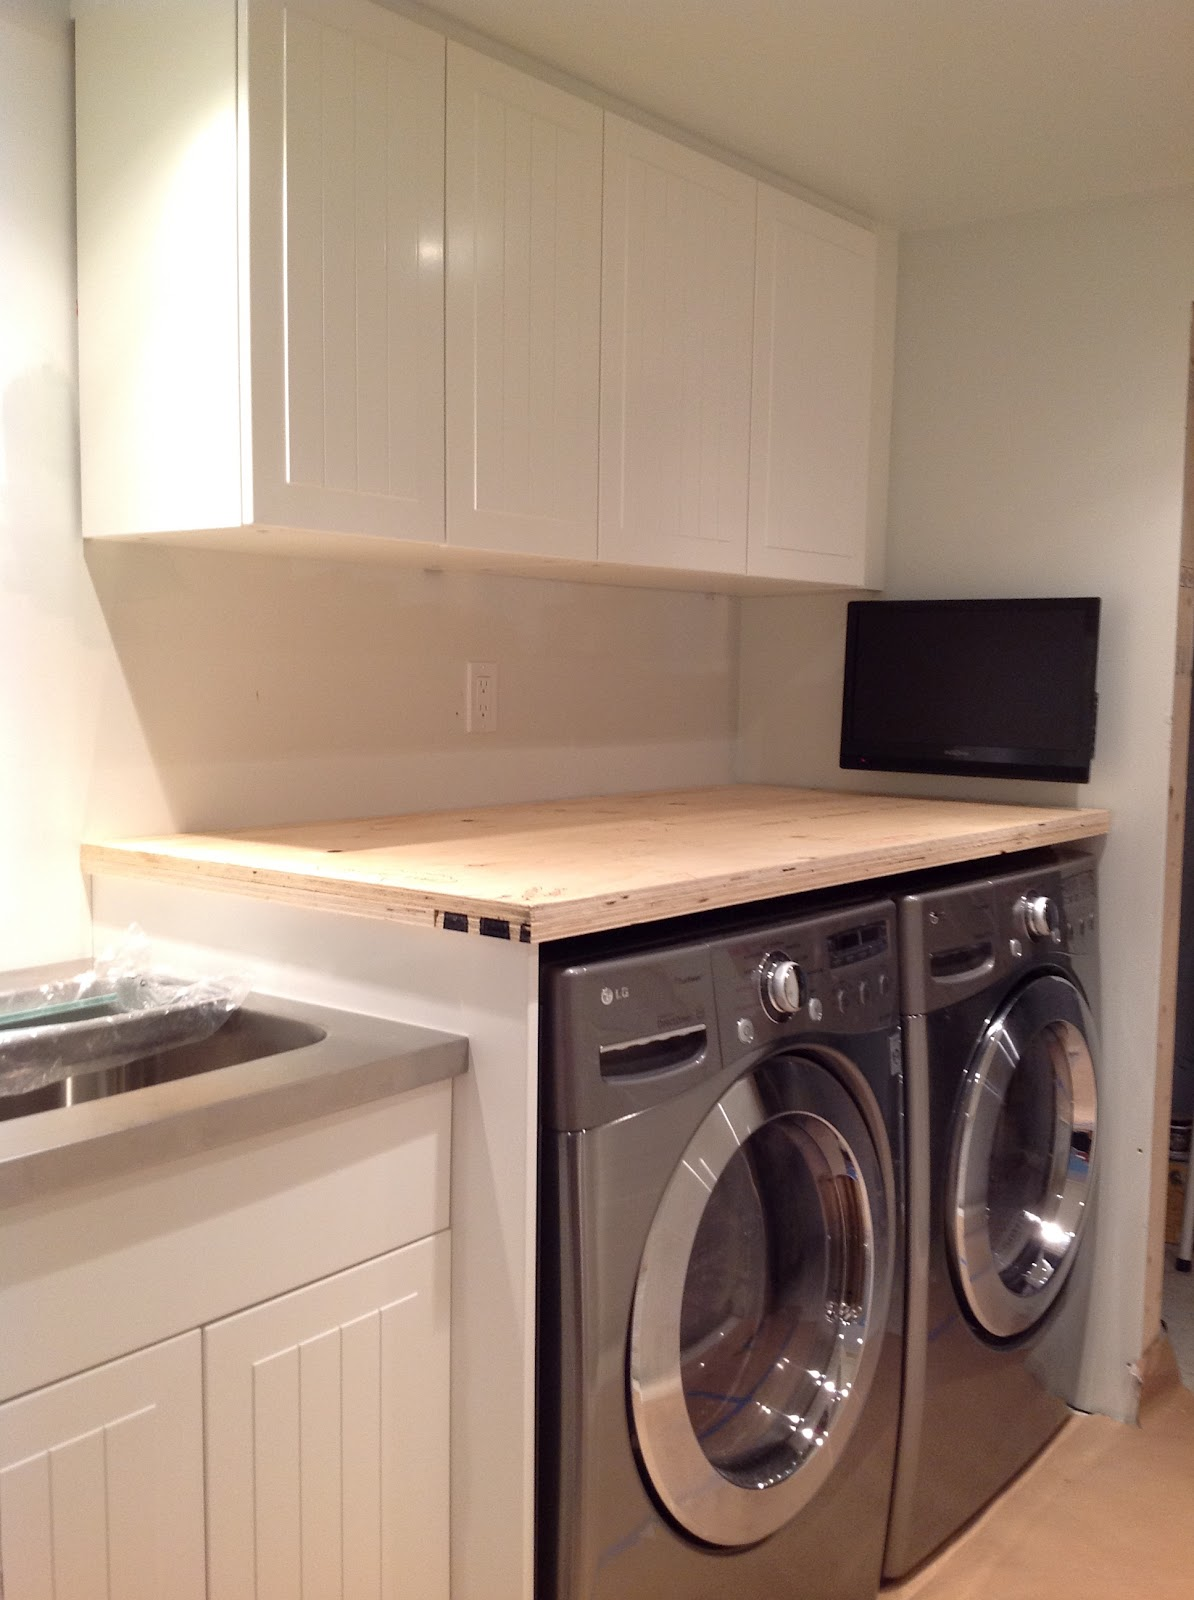 How To Support A Laundry Room Countertop Over Washer And Dryer Rambling Renovators